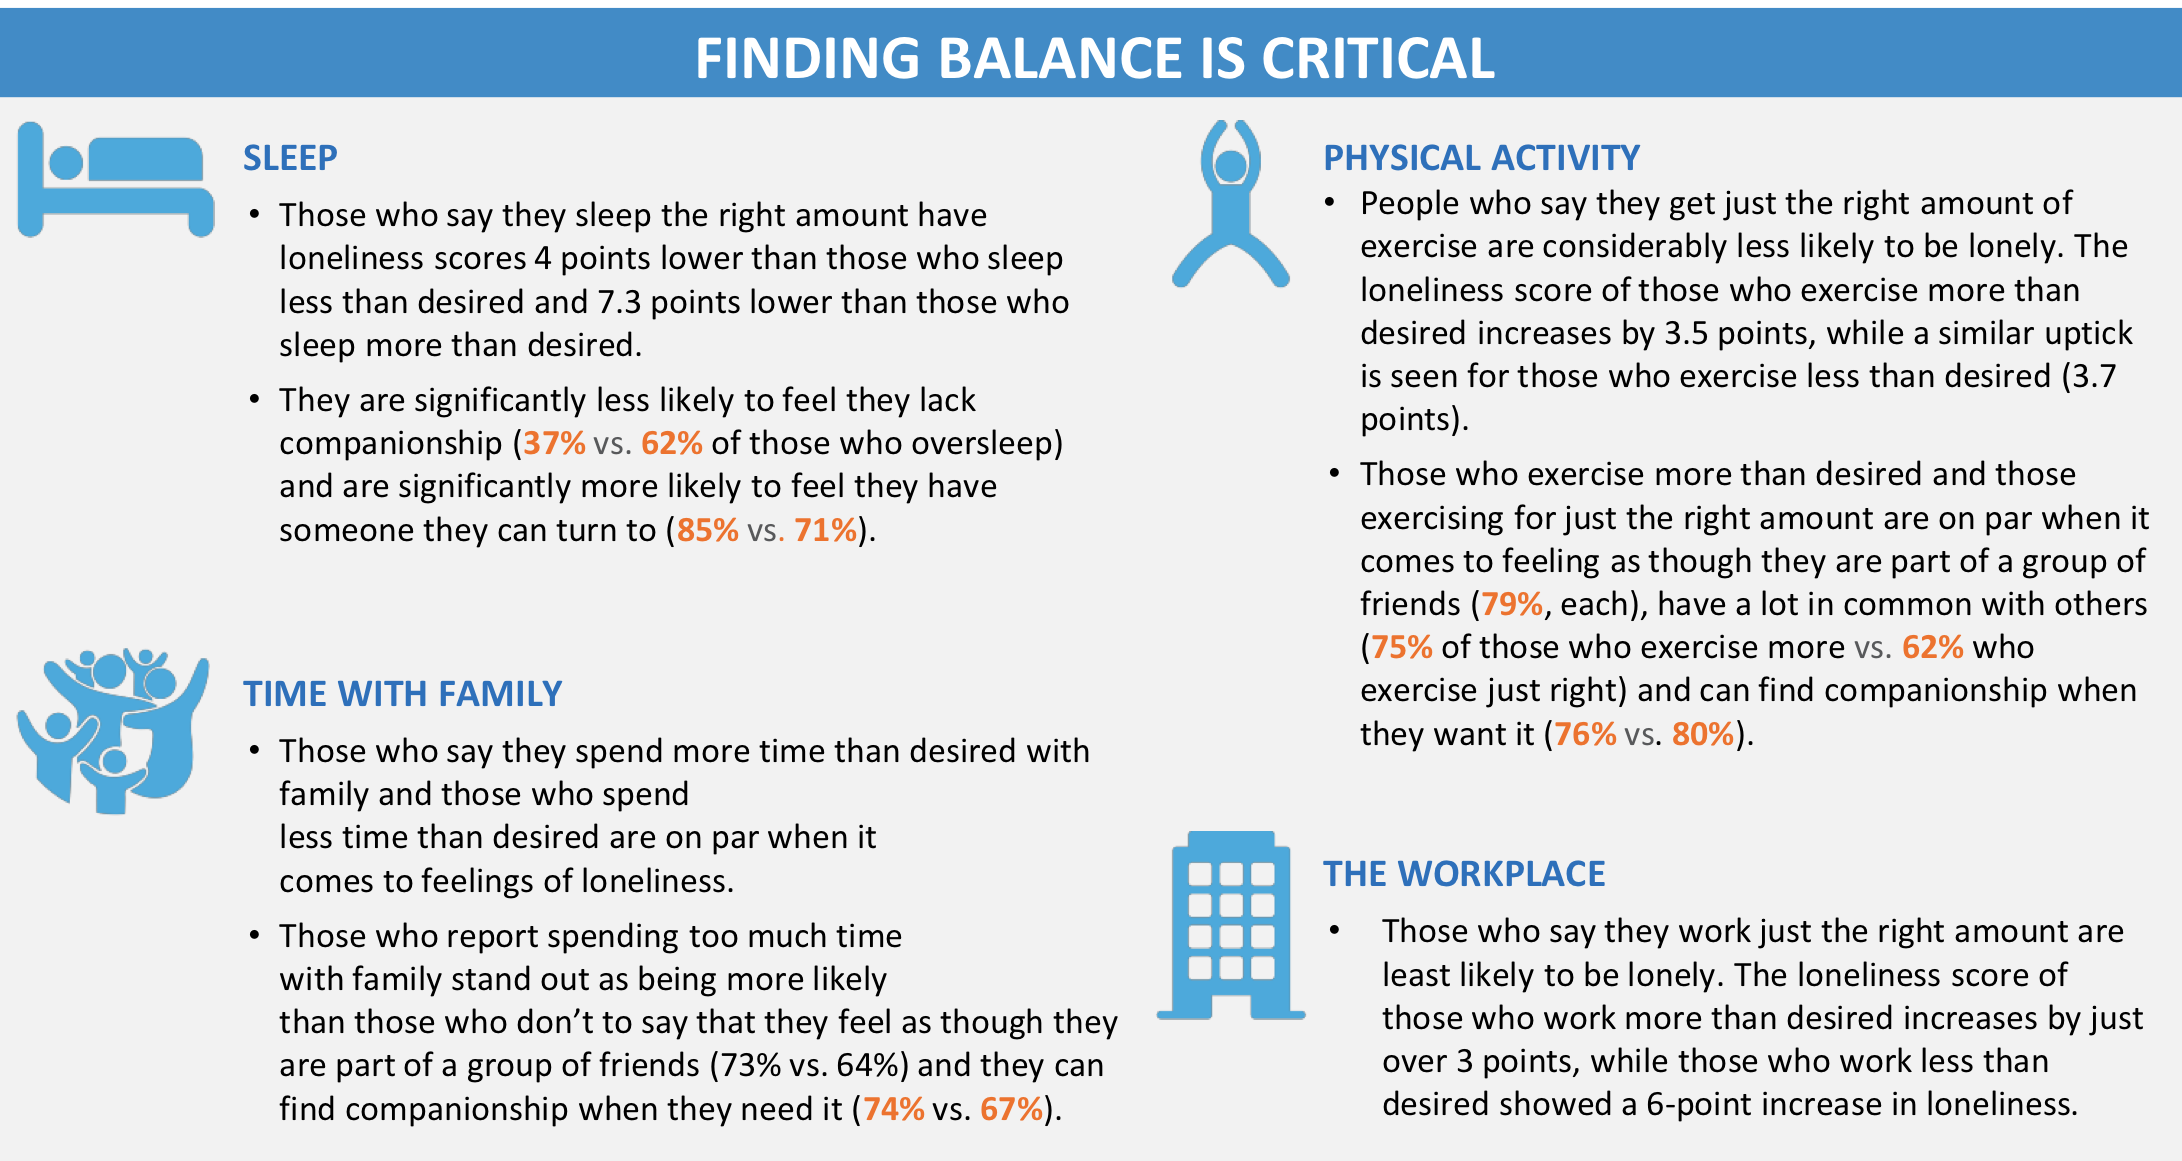 tips to finding balance to decrease loneliness